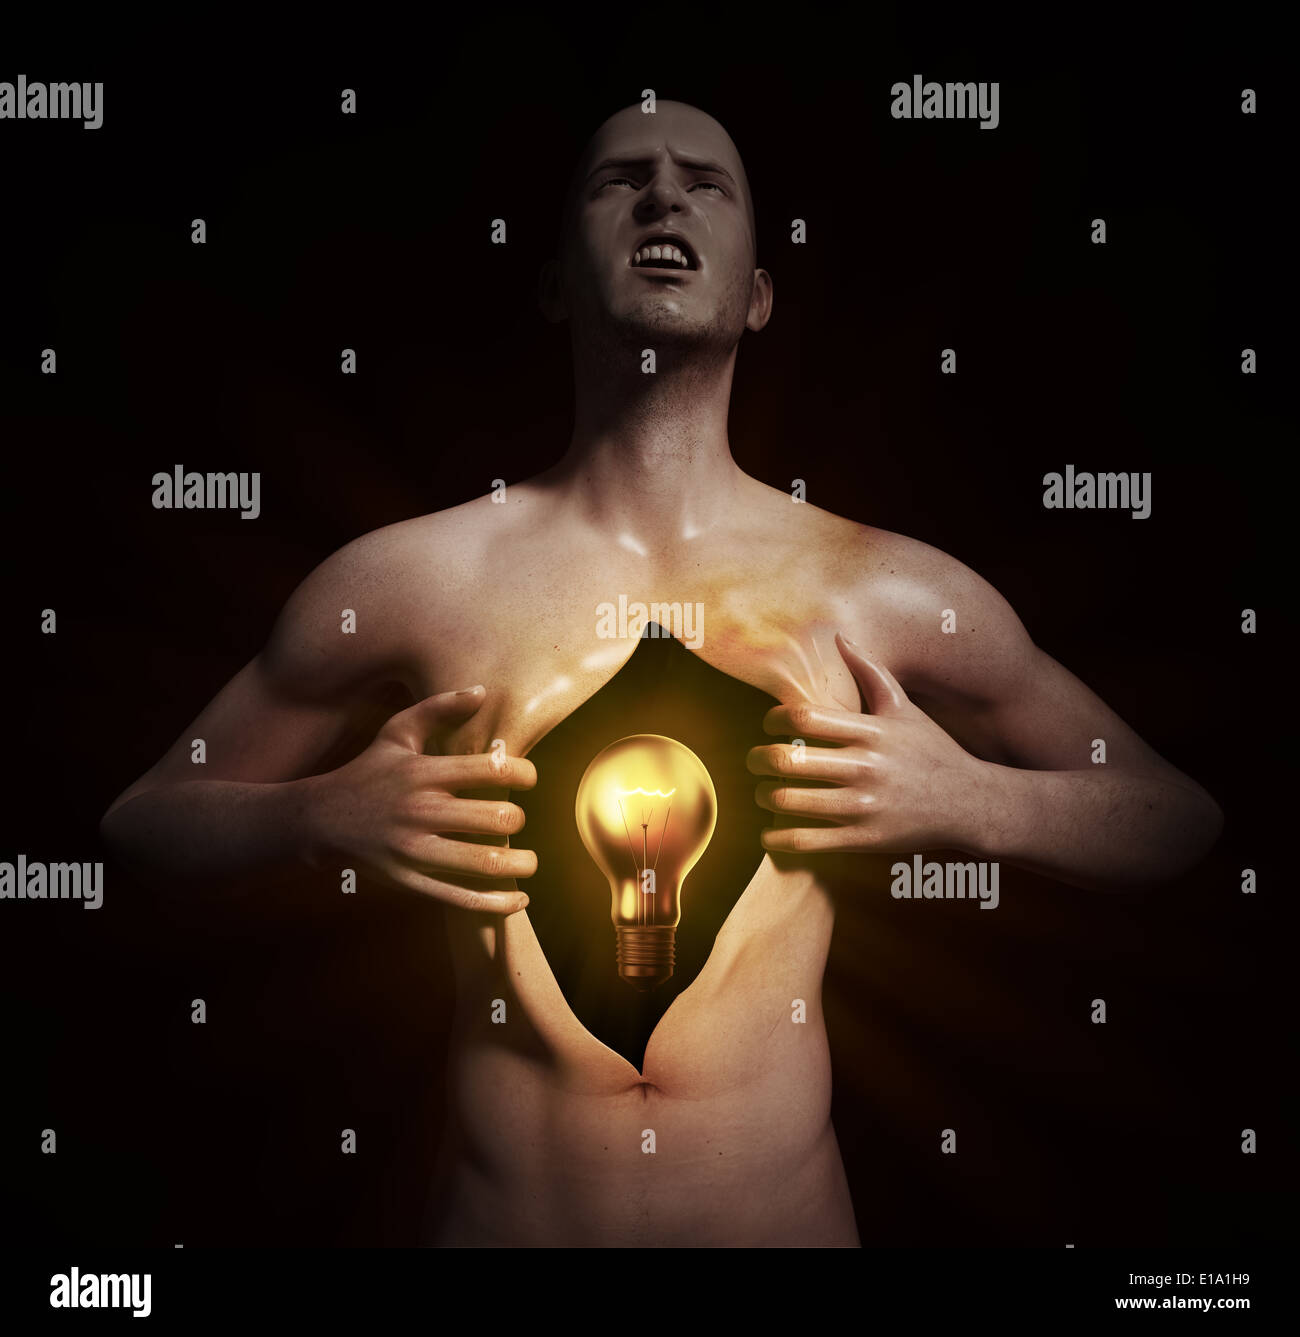 A glowing bulb inside an open chest - Stock Image